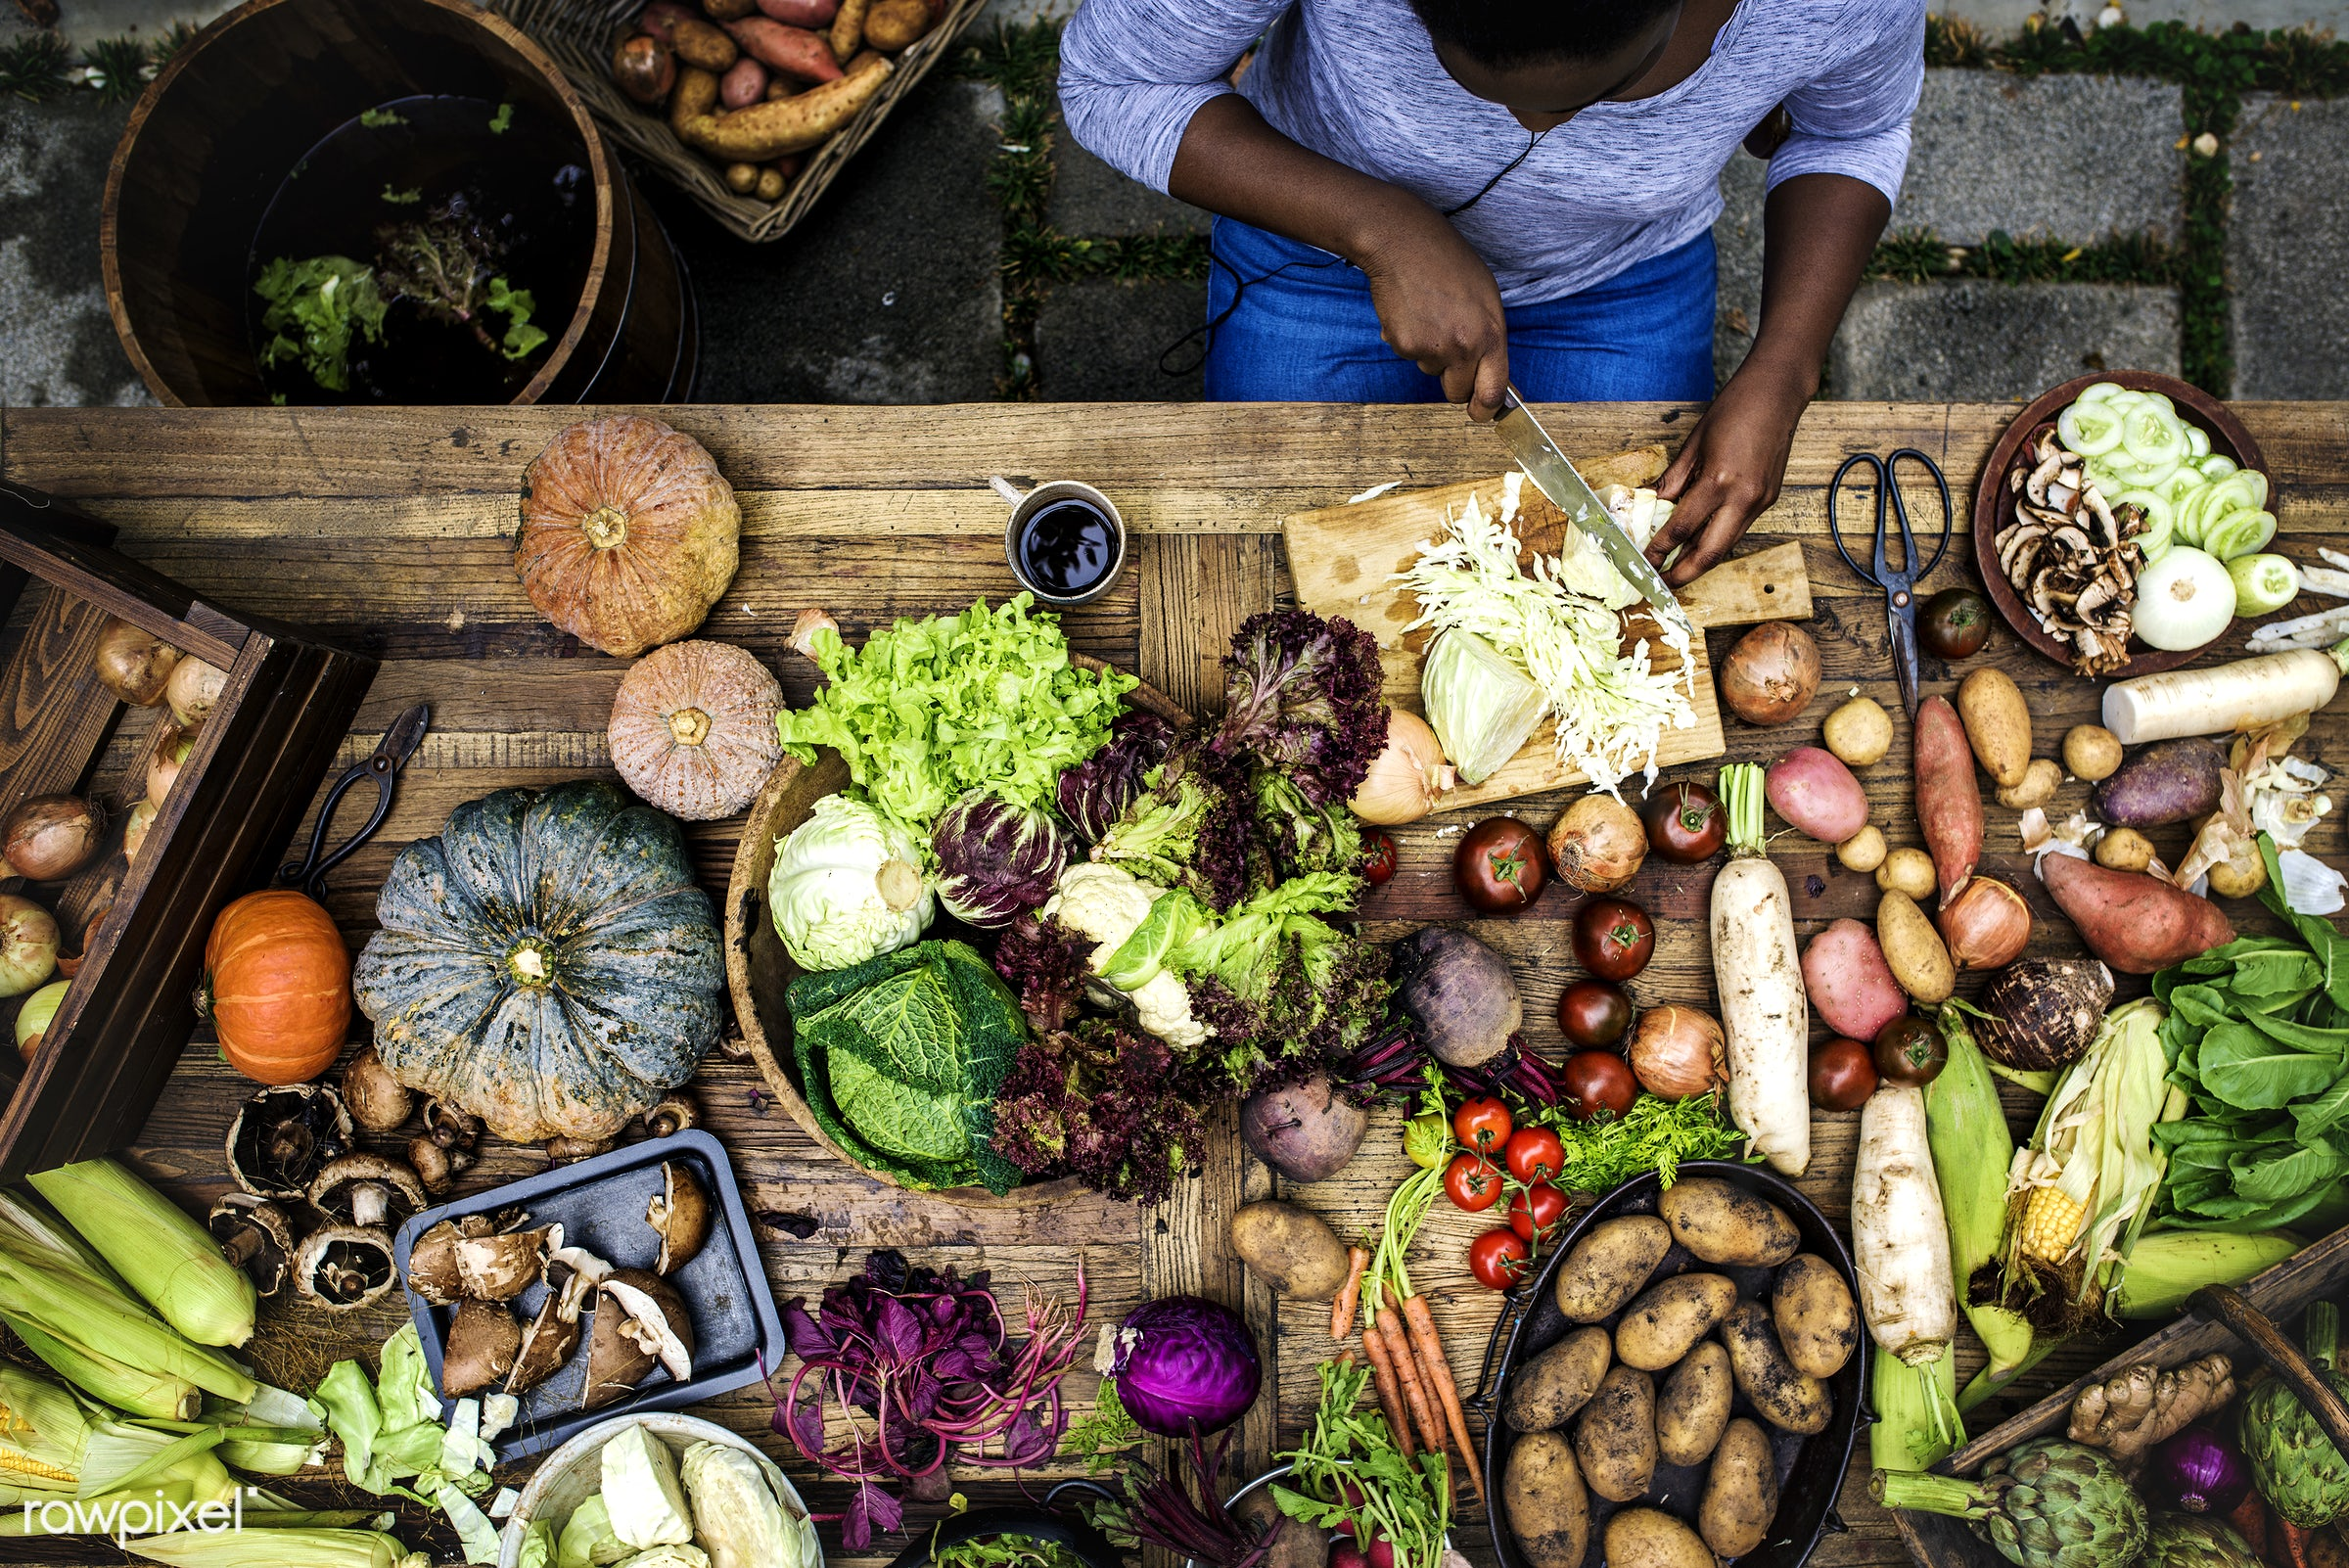 cuisine, african ethnicity, variation, chopping board, gastronomy, type, people, kind, ingredients, hands, making, cooking,...